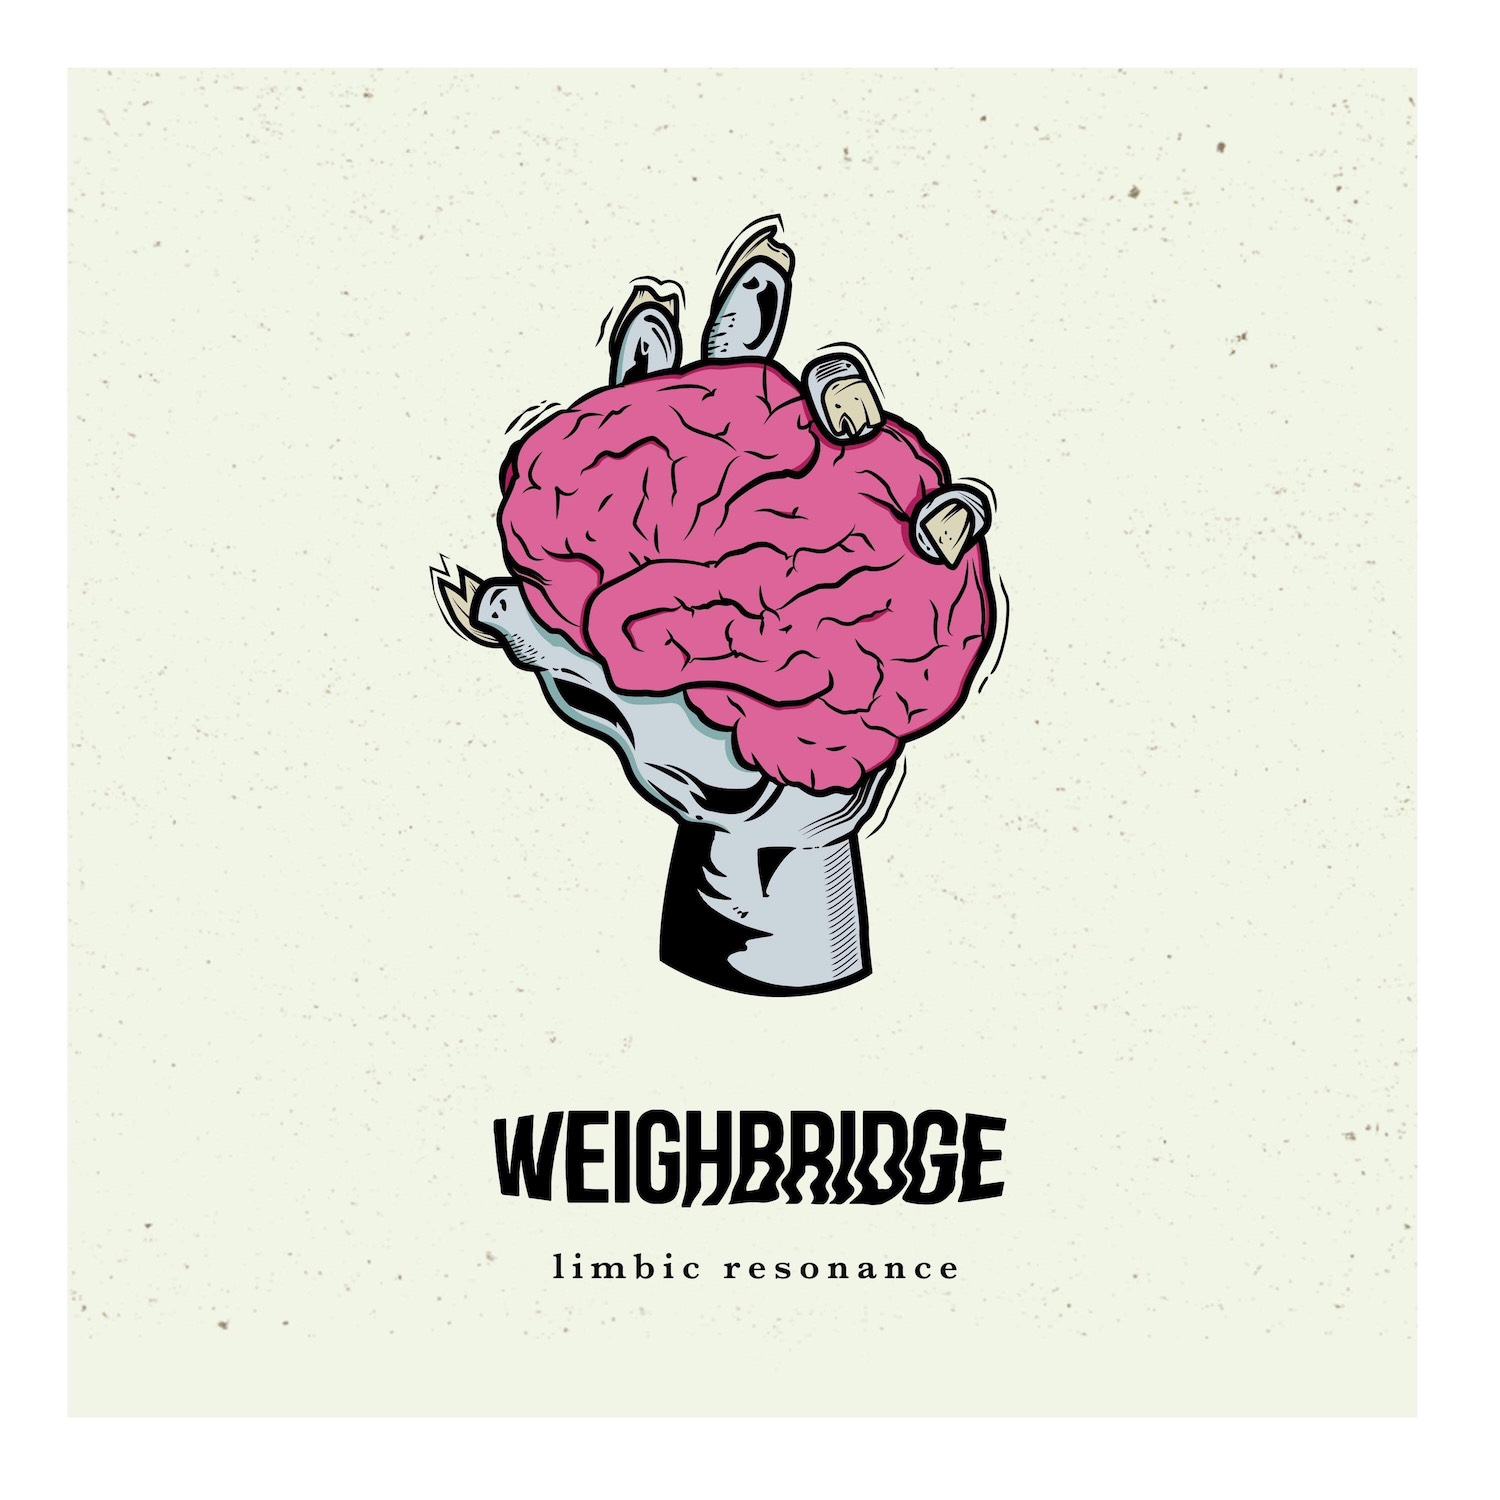 Weighbridge Limbic Resonance artwork